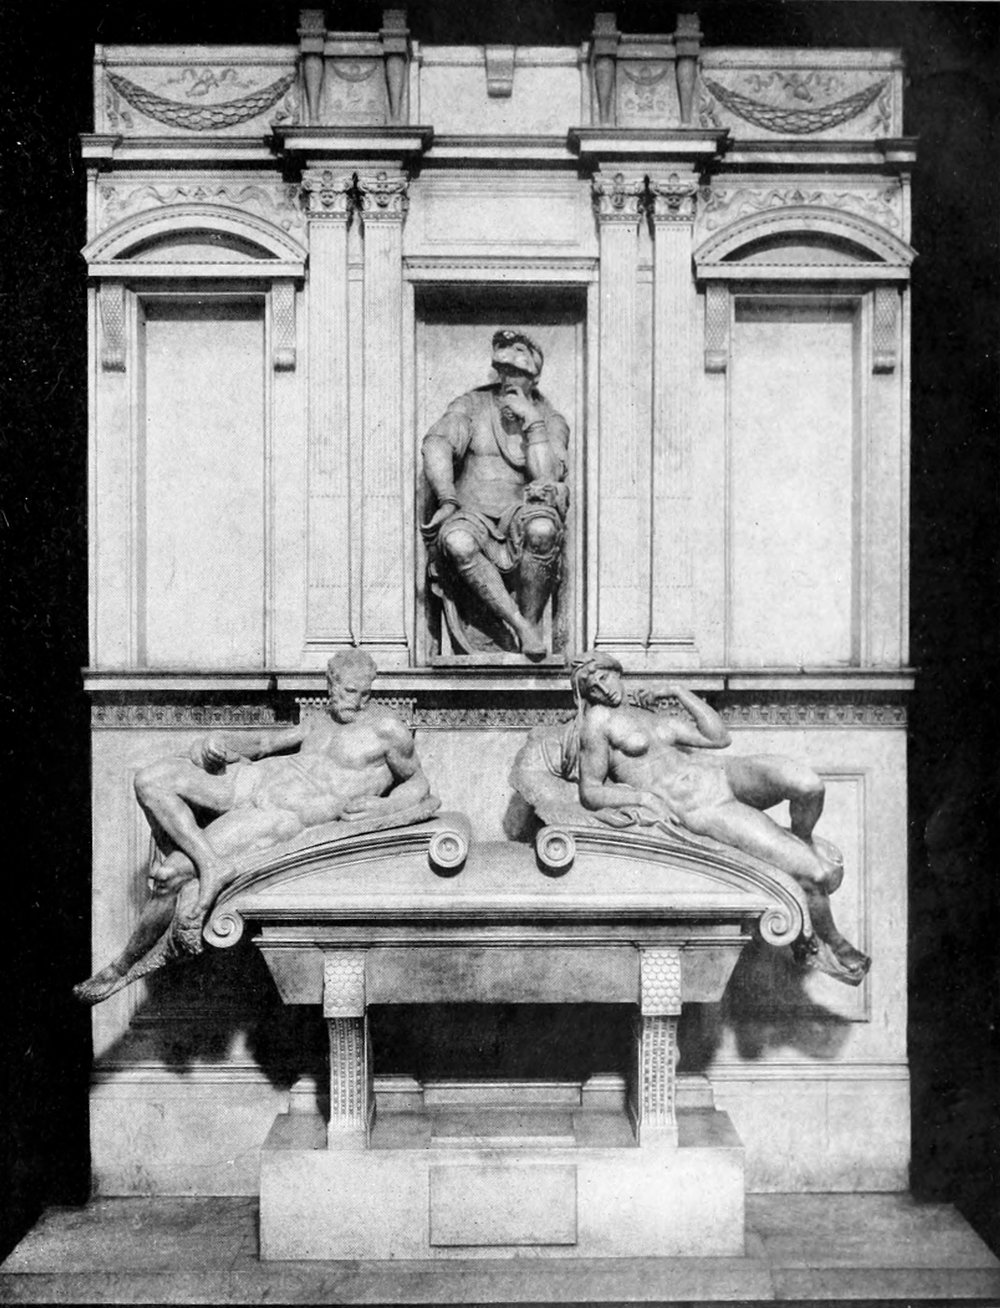 Michelangelo, Tomb of Lorenzo di Piero de' Medici with Dusk and Dawn, 1533, Florence, Italy